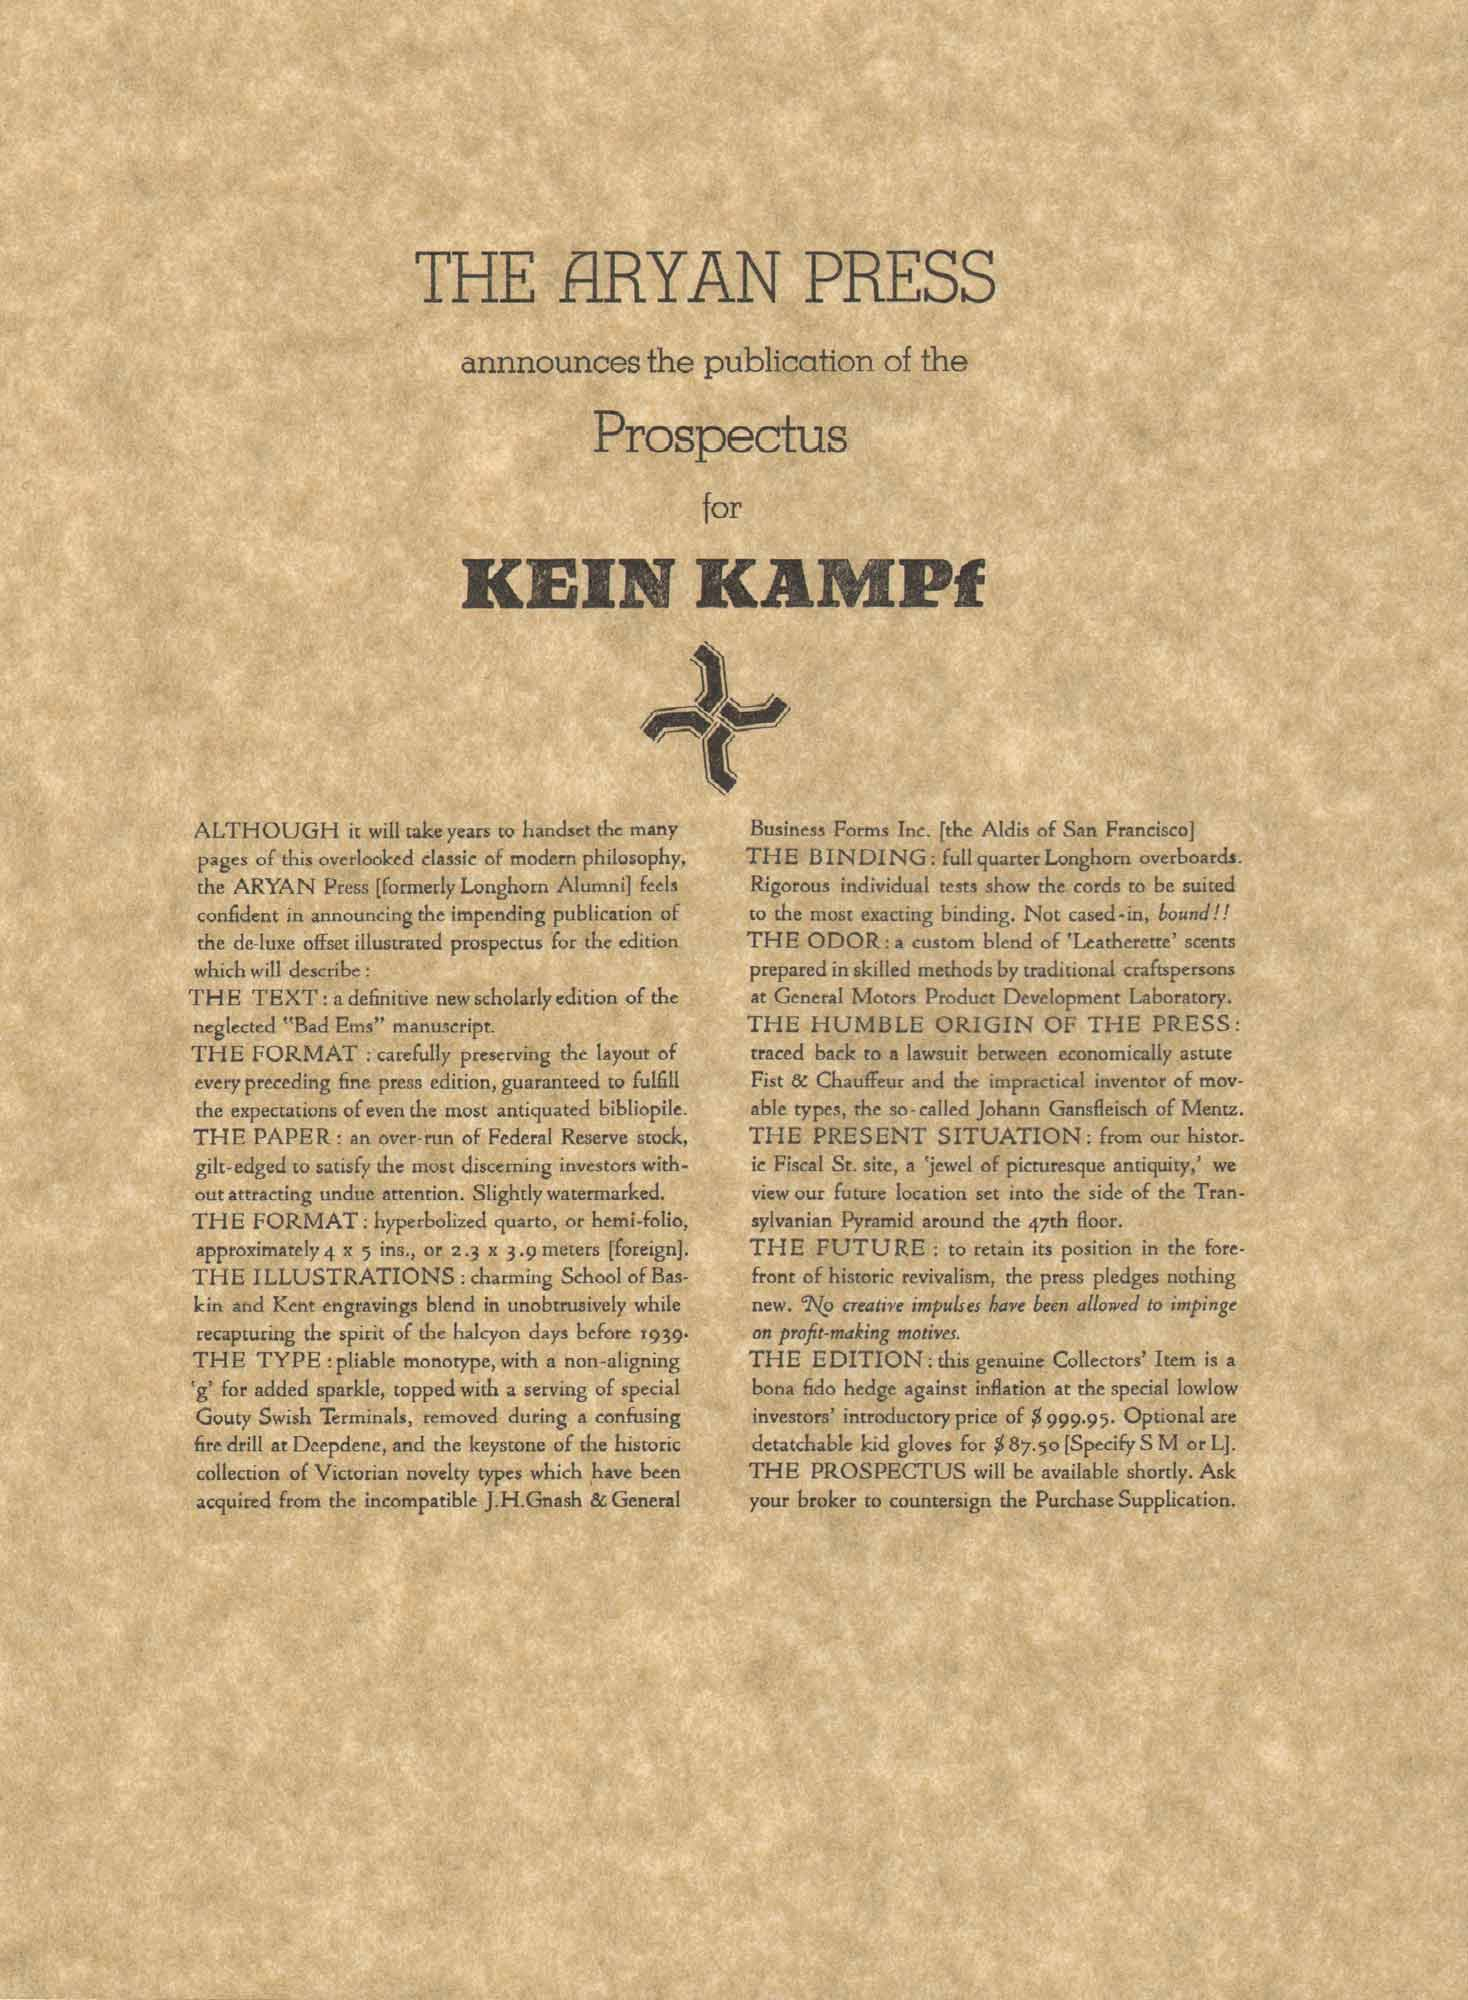 image of broadside by Anon. (Alastair Johnston) // THE ARYAN PRESS / annnounces the publication of the / Prospectus / for / KEIN KAMPf // ALTHOUGH it will take years to handset the many pages of this overlooked dusk of modem philosophy, the ARYAN Press [formerly Longhorn Alumni] feels confident in announcing the impending publication of the de-luxe offset illustrated prospectus for the edition which will describe : / THE TEXT: a definitive new scholarly edition of the neglected 'Bad Ems' manuscript. / THE FORMAT ; carefully preserving the layout of every preceding fine press edition, guaranteed to fulfill the expectations of even the most antiquated bibliopile. / THE PAPER: an over-run of Federal Reserve stock, gilt-edged to satisfy the most discerning investors without attracting undue attention. Slightly watermarked. / THE FORMAT: hyperbolized quarto, pr hemi-folio, approximately 4 x 5 ins., or 2.3 x 3.9 meters [foreign]. / THE ILLUSTRATIONS: charming School of Baskin and Kent engravings blend in unobstrusively while recaptunng the spirit of the halcyon days before 1939. / THE TYPE: pliable monotype, with a non-aligning 'g' for added sparkle, topped with a serving of special Gouty Swish Terminals, removed during a confusing fire drill at Deepdene, and the keystone of the historic collection of Victorian novelty types which, have been acquited from the incompatible J.H.Gnash and General Business Forms Inc. [the Aldis of San Francisco] / THE BINDING: full quarter Longhorn overboards. Rigorous individual tests show the cords to be suited to the most exacting binding. Not cased-in, bound!! / THE ODOR: a custom blend of 'Leatherette' scents prepared in skilled methods by traditional craftspersons at General Motors Product Development Laboratory. / THE HUMBLE ORIGIN OF THE PRESS: traced back to a lawsuit between emnomically astute Fist and Chauffeur and the impractical inventor of movable types, the so-called Johann Gansfleisch of Mentz. / THE PRESENT SITUATION: from our historic Fiscal St. site, a 'jewel of picturesque antiquity,' we view our future location set into the side of the Transylvanian Pyramid around the 47th floor. / THE FUTURE: to retain its position in the forefront of historic revivalism, the press pledges nothing new. No creative impulses have been allowed to impinge on profit-making motives. / THE EDITION: this genuine Collectors' Item is a bona fido hedge against inflation at the special lowlow investors' introductory price of $999.95. Optional are detatchable kid gloves for $87.50 [Specify S M or L]. / THE PROSPECTUS will be available shortly. Ask your broker to countersign the Purchase Supplication.